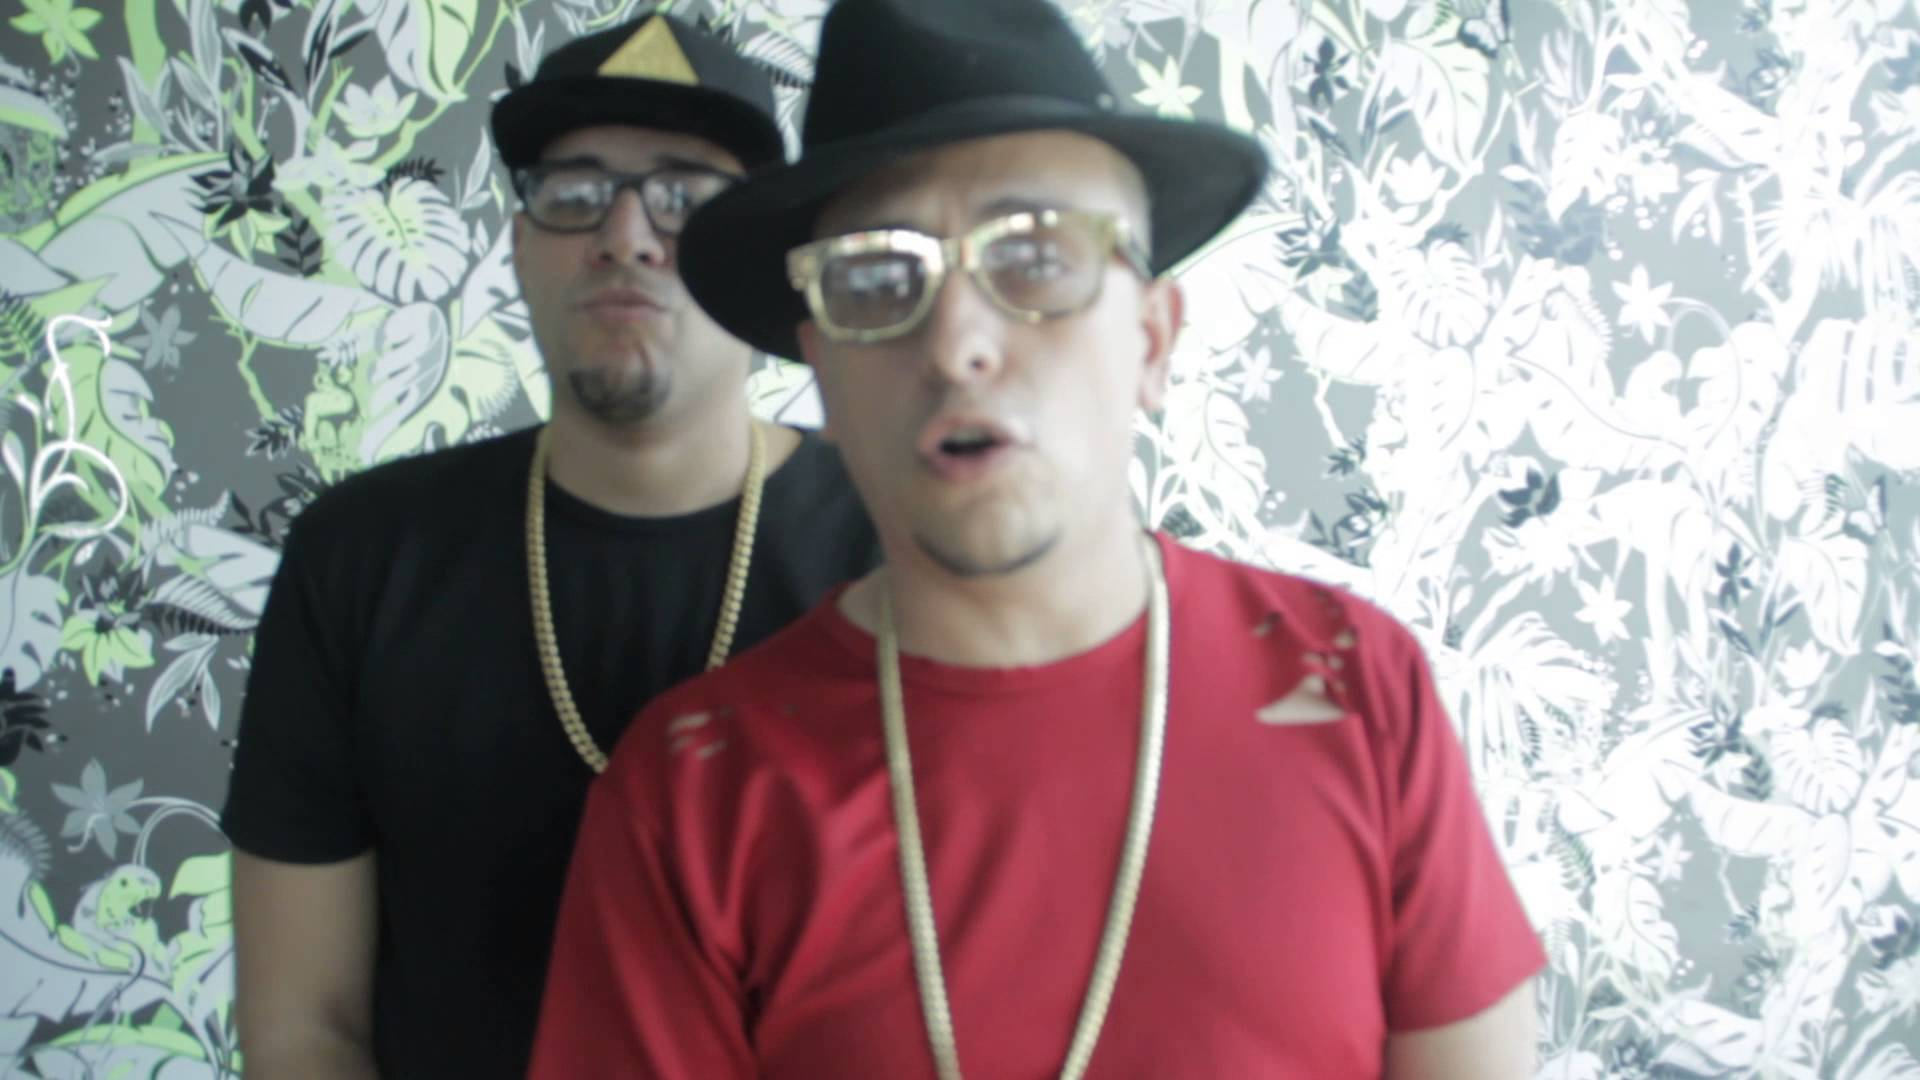 j king maximan saludando a malia - Casper Magico – No Te Veo (Official Video)